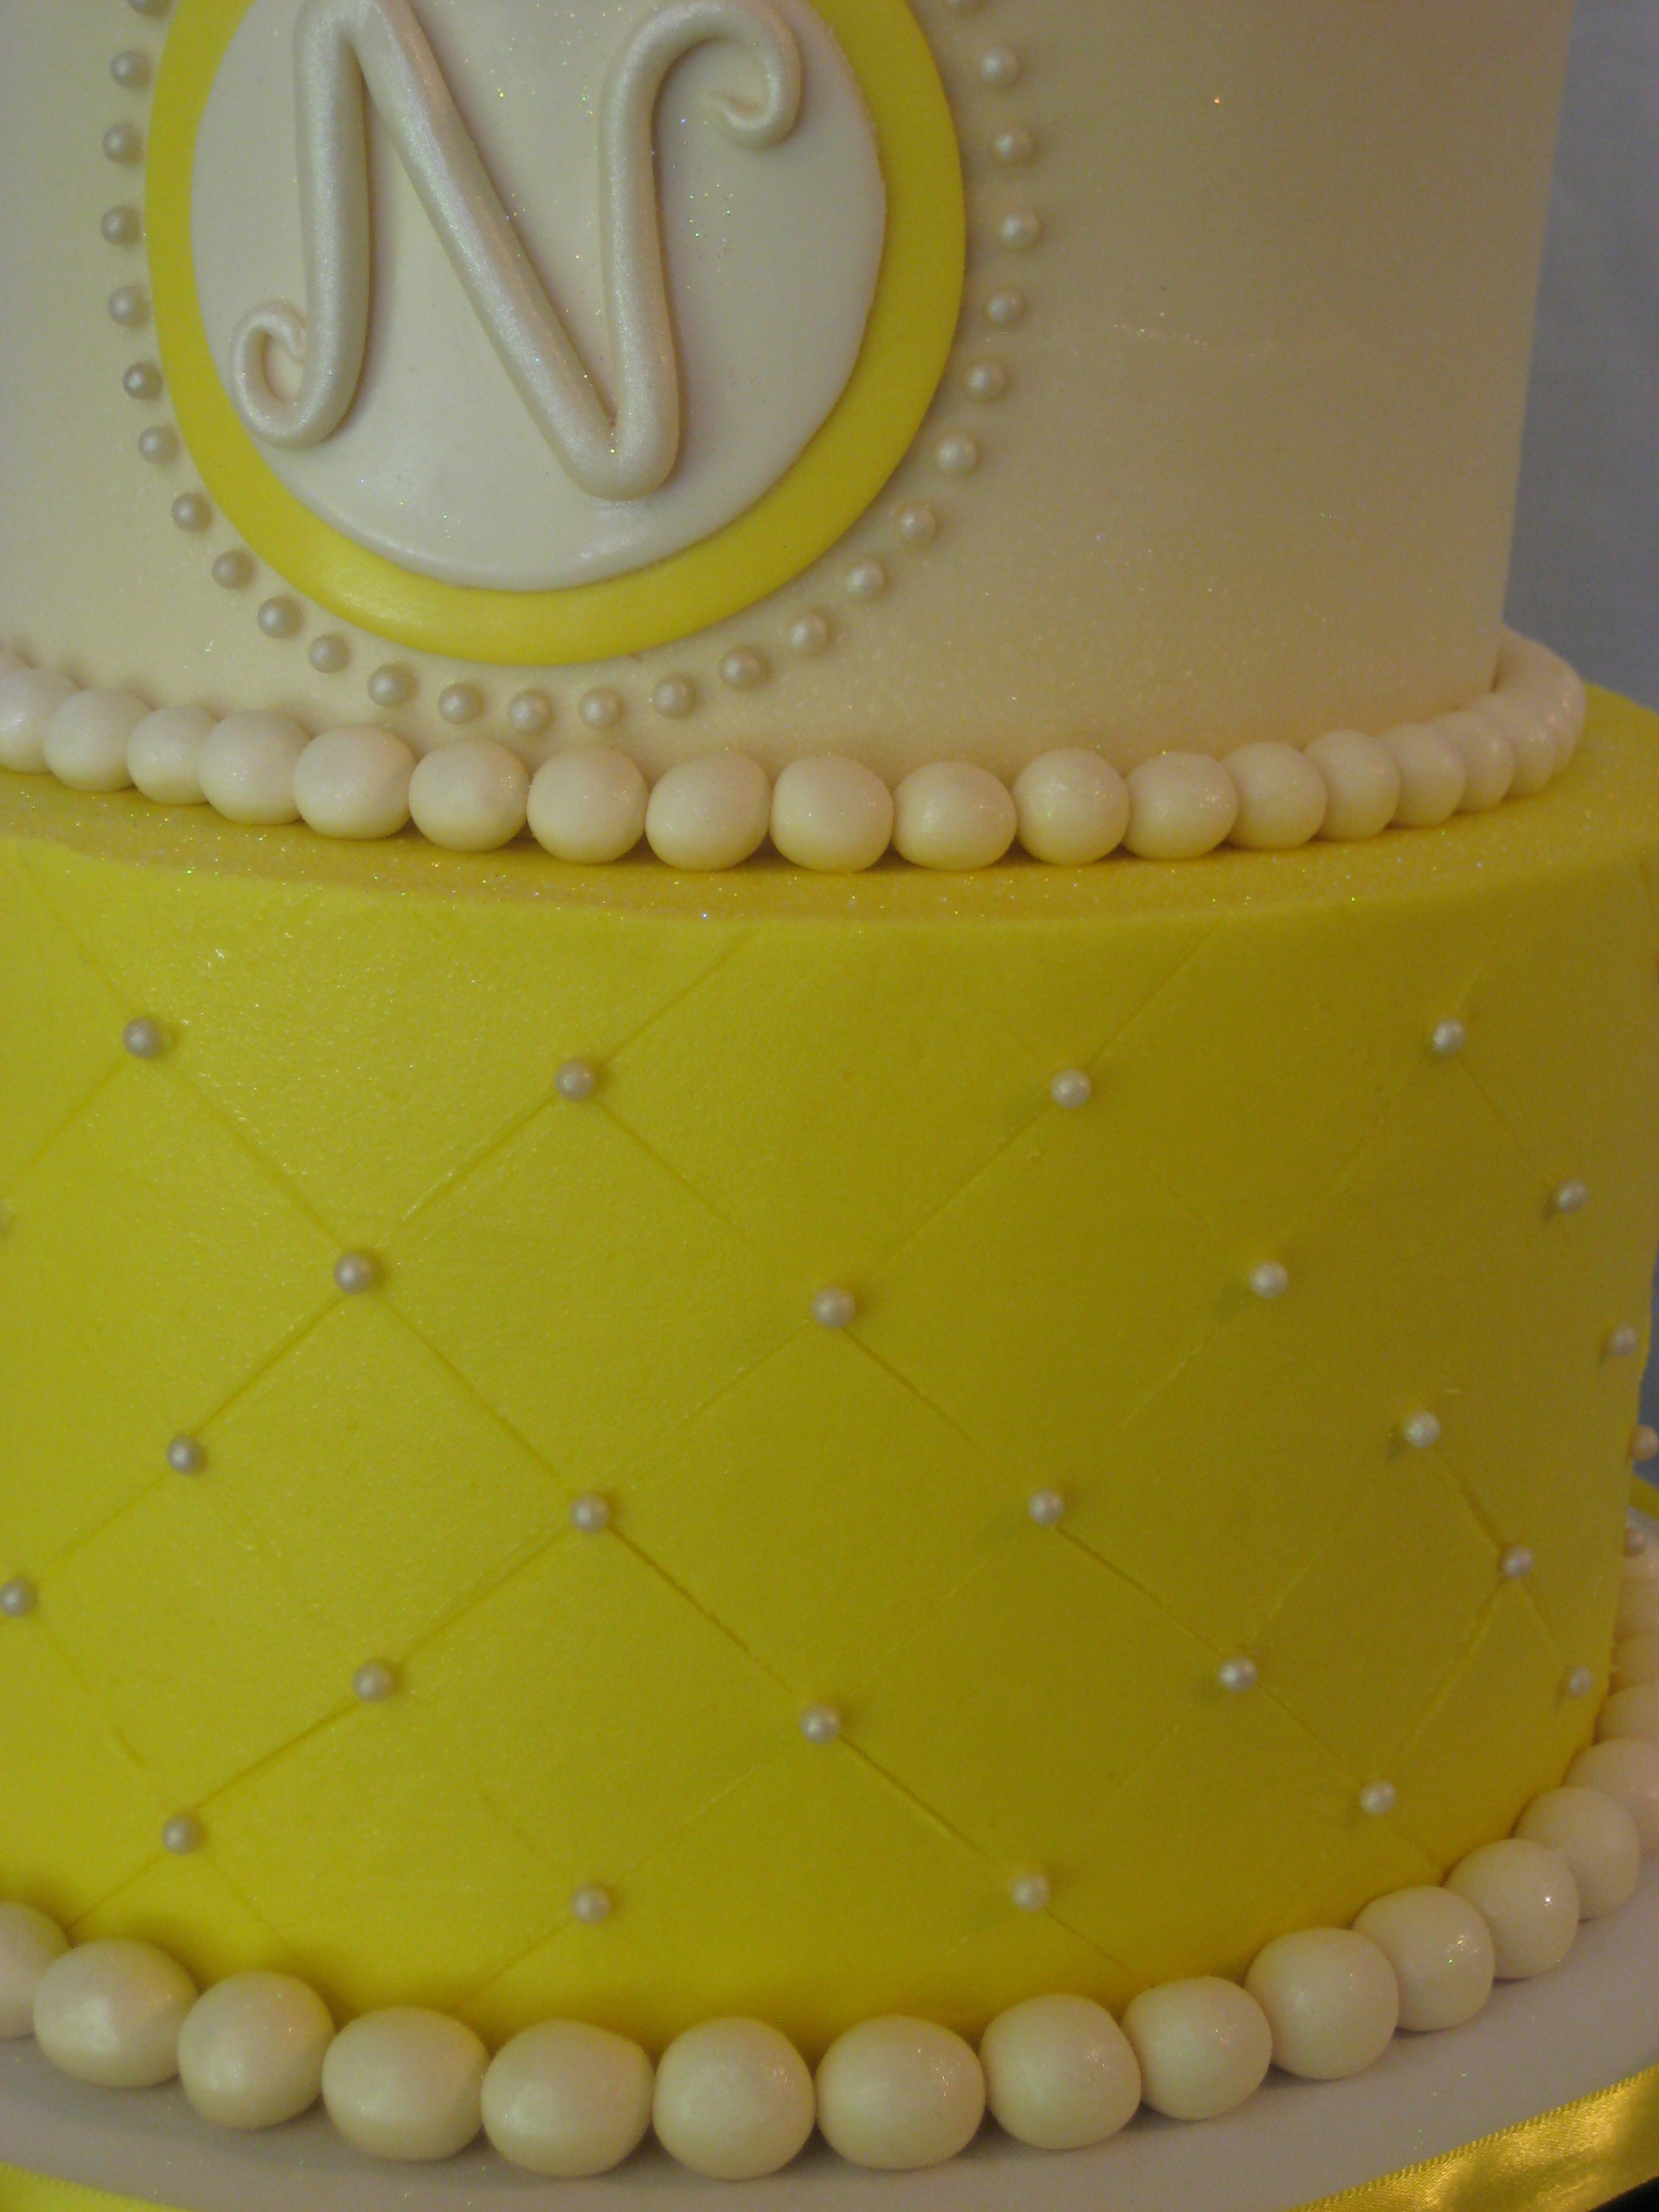 Diamond Pattern On Buttercream Cake